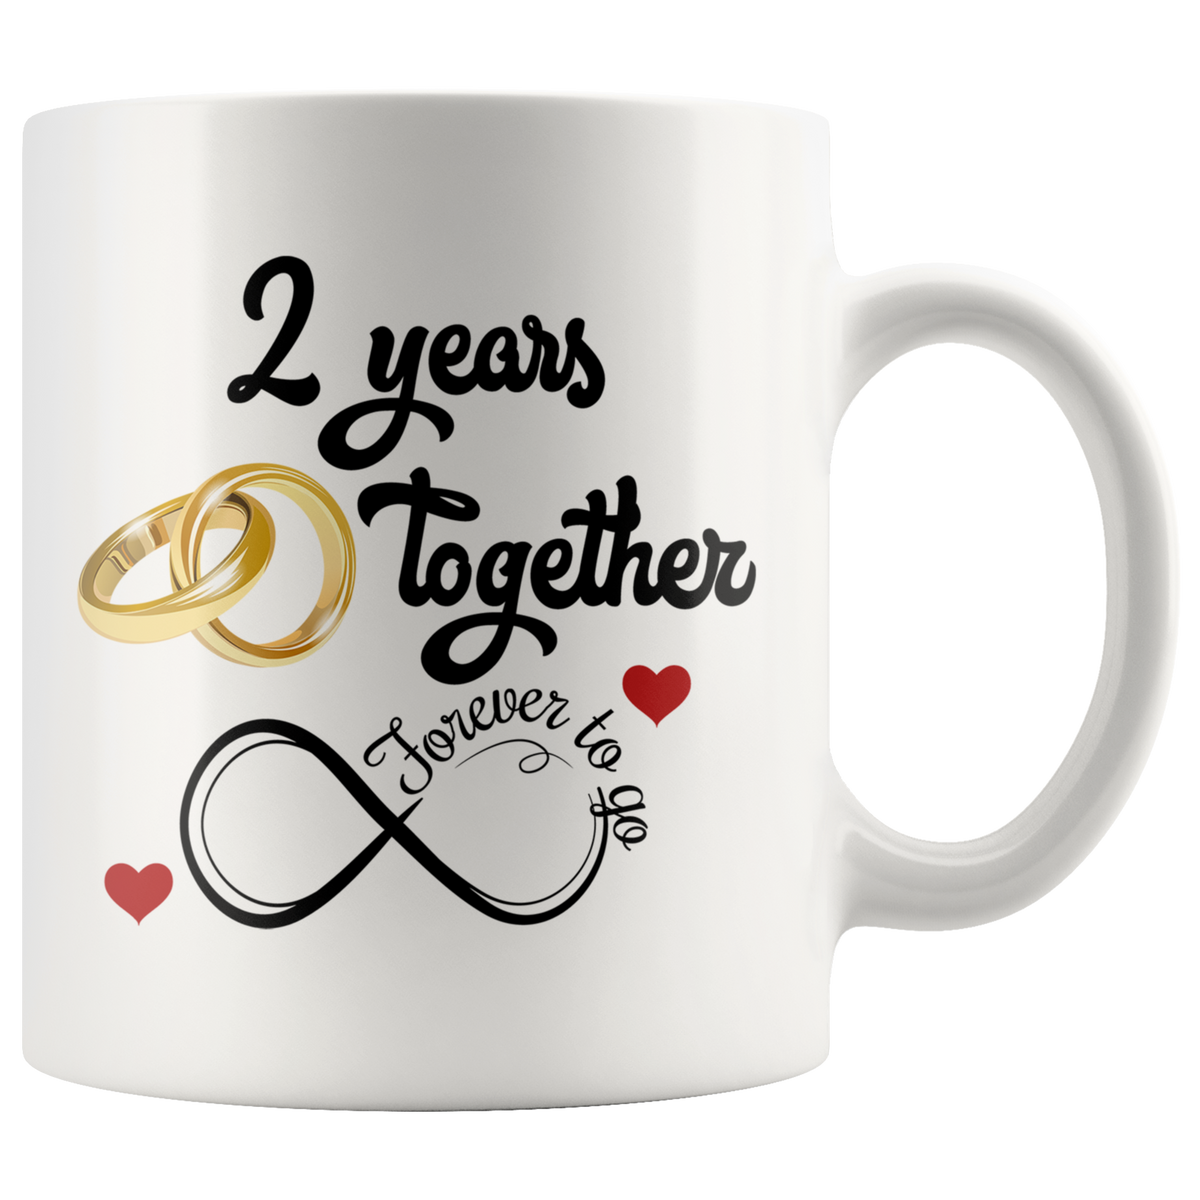 Wedding Anniversary Gifts For Her: Second Wedding Anniversary Gift For Him And Her, 2nd